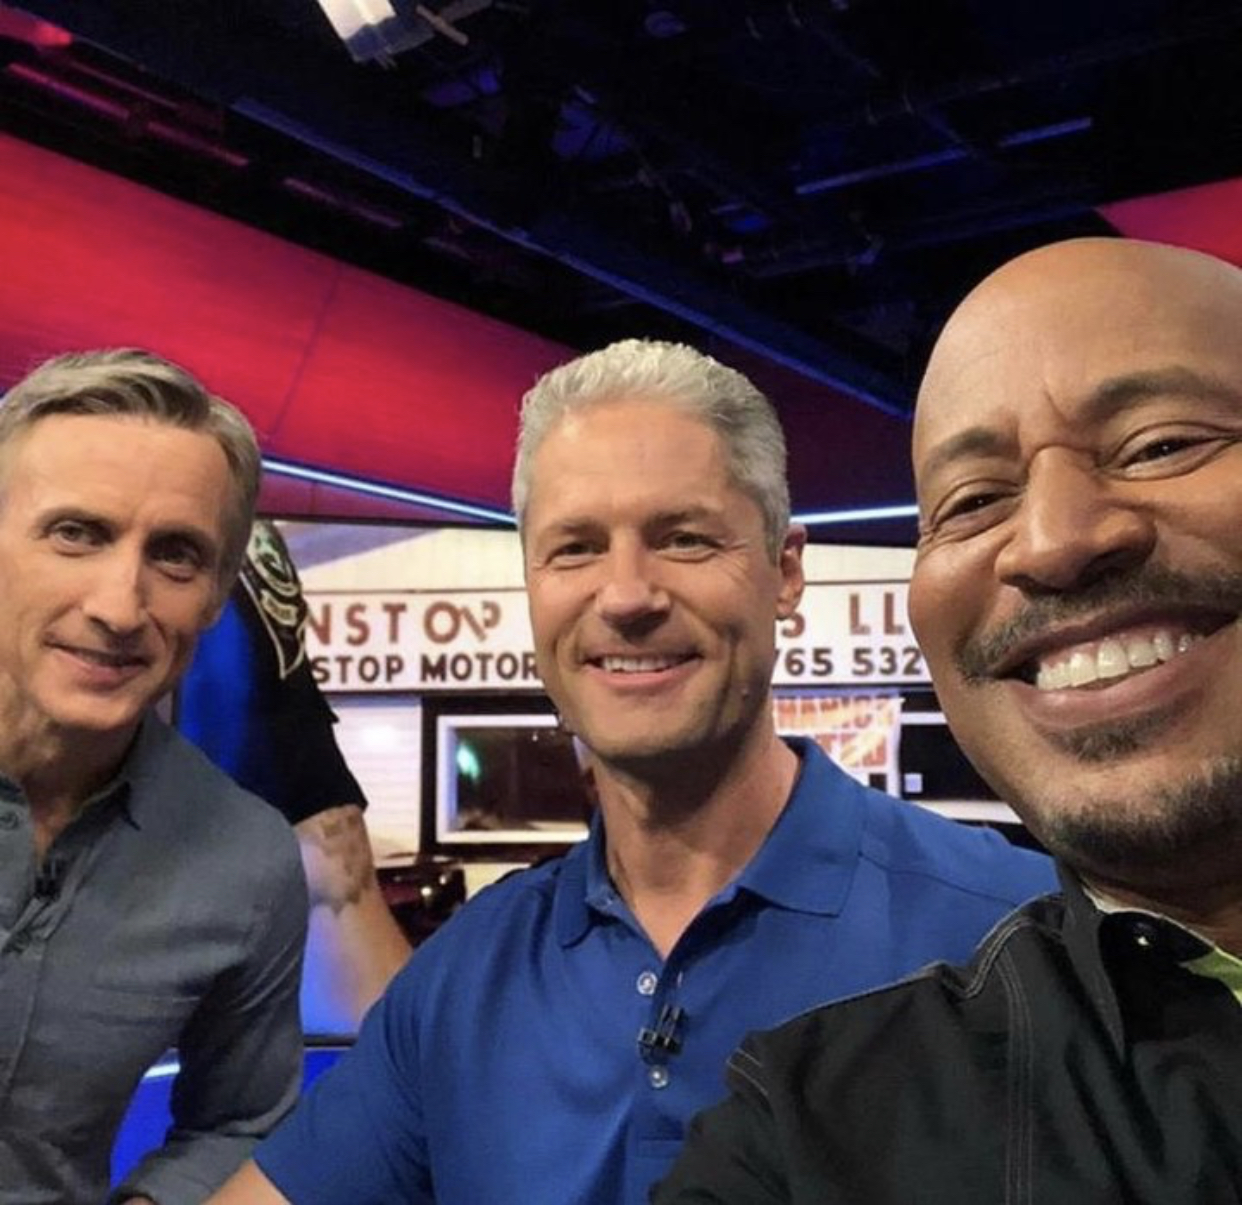 Live PD hosts